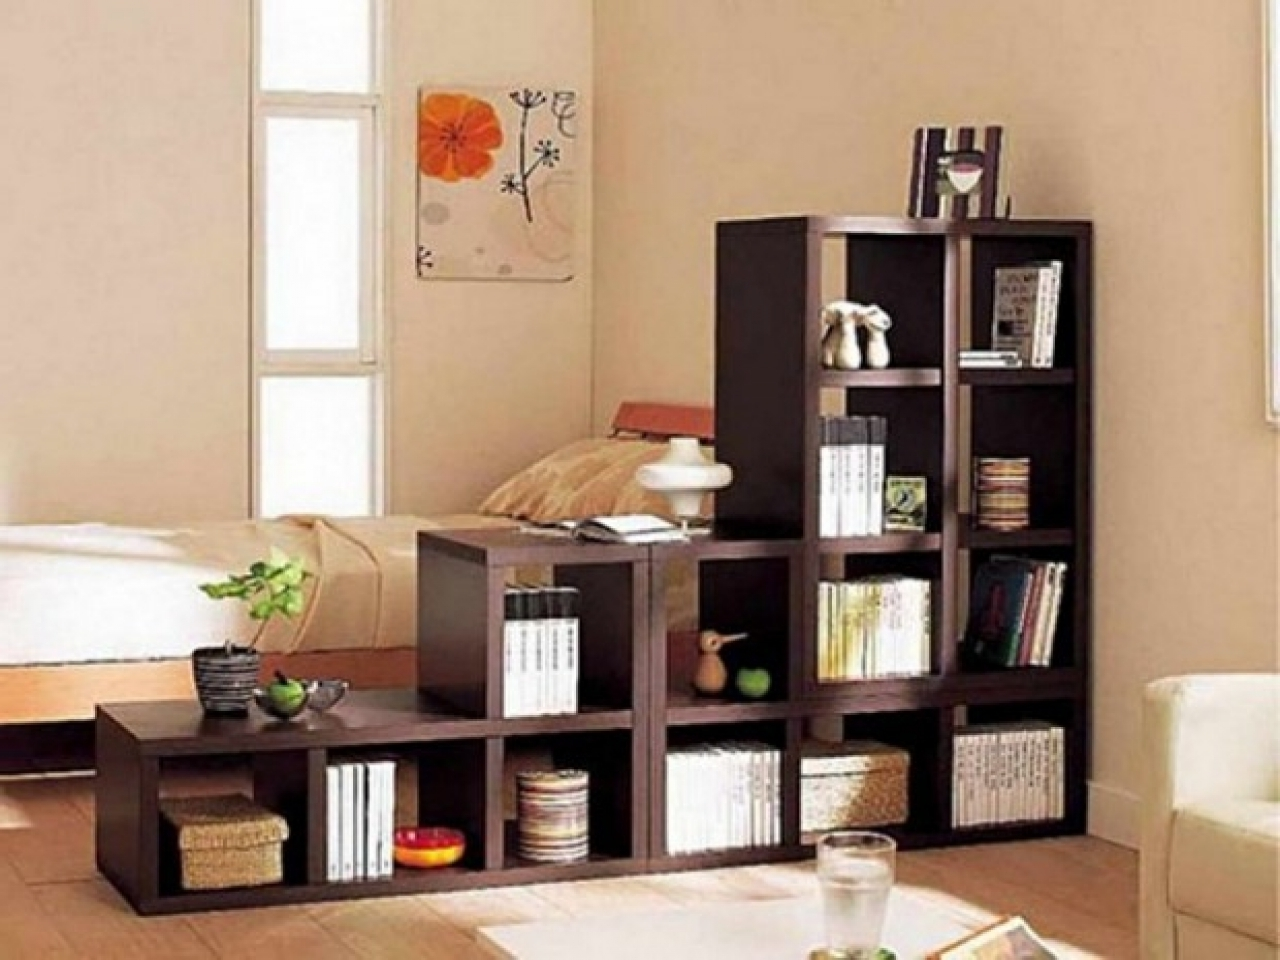 Famous Room Divider Bookcases With Regard To Room Divider With Shelves Ideas Bookshelves Baaf – Surripui (View 11 of 15)